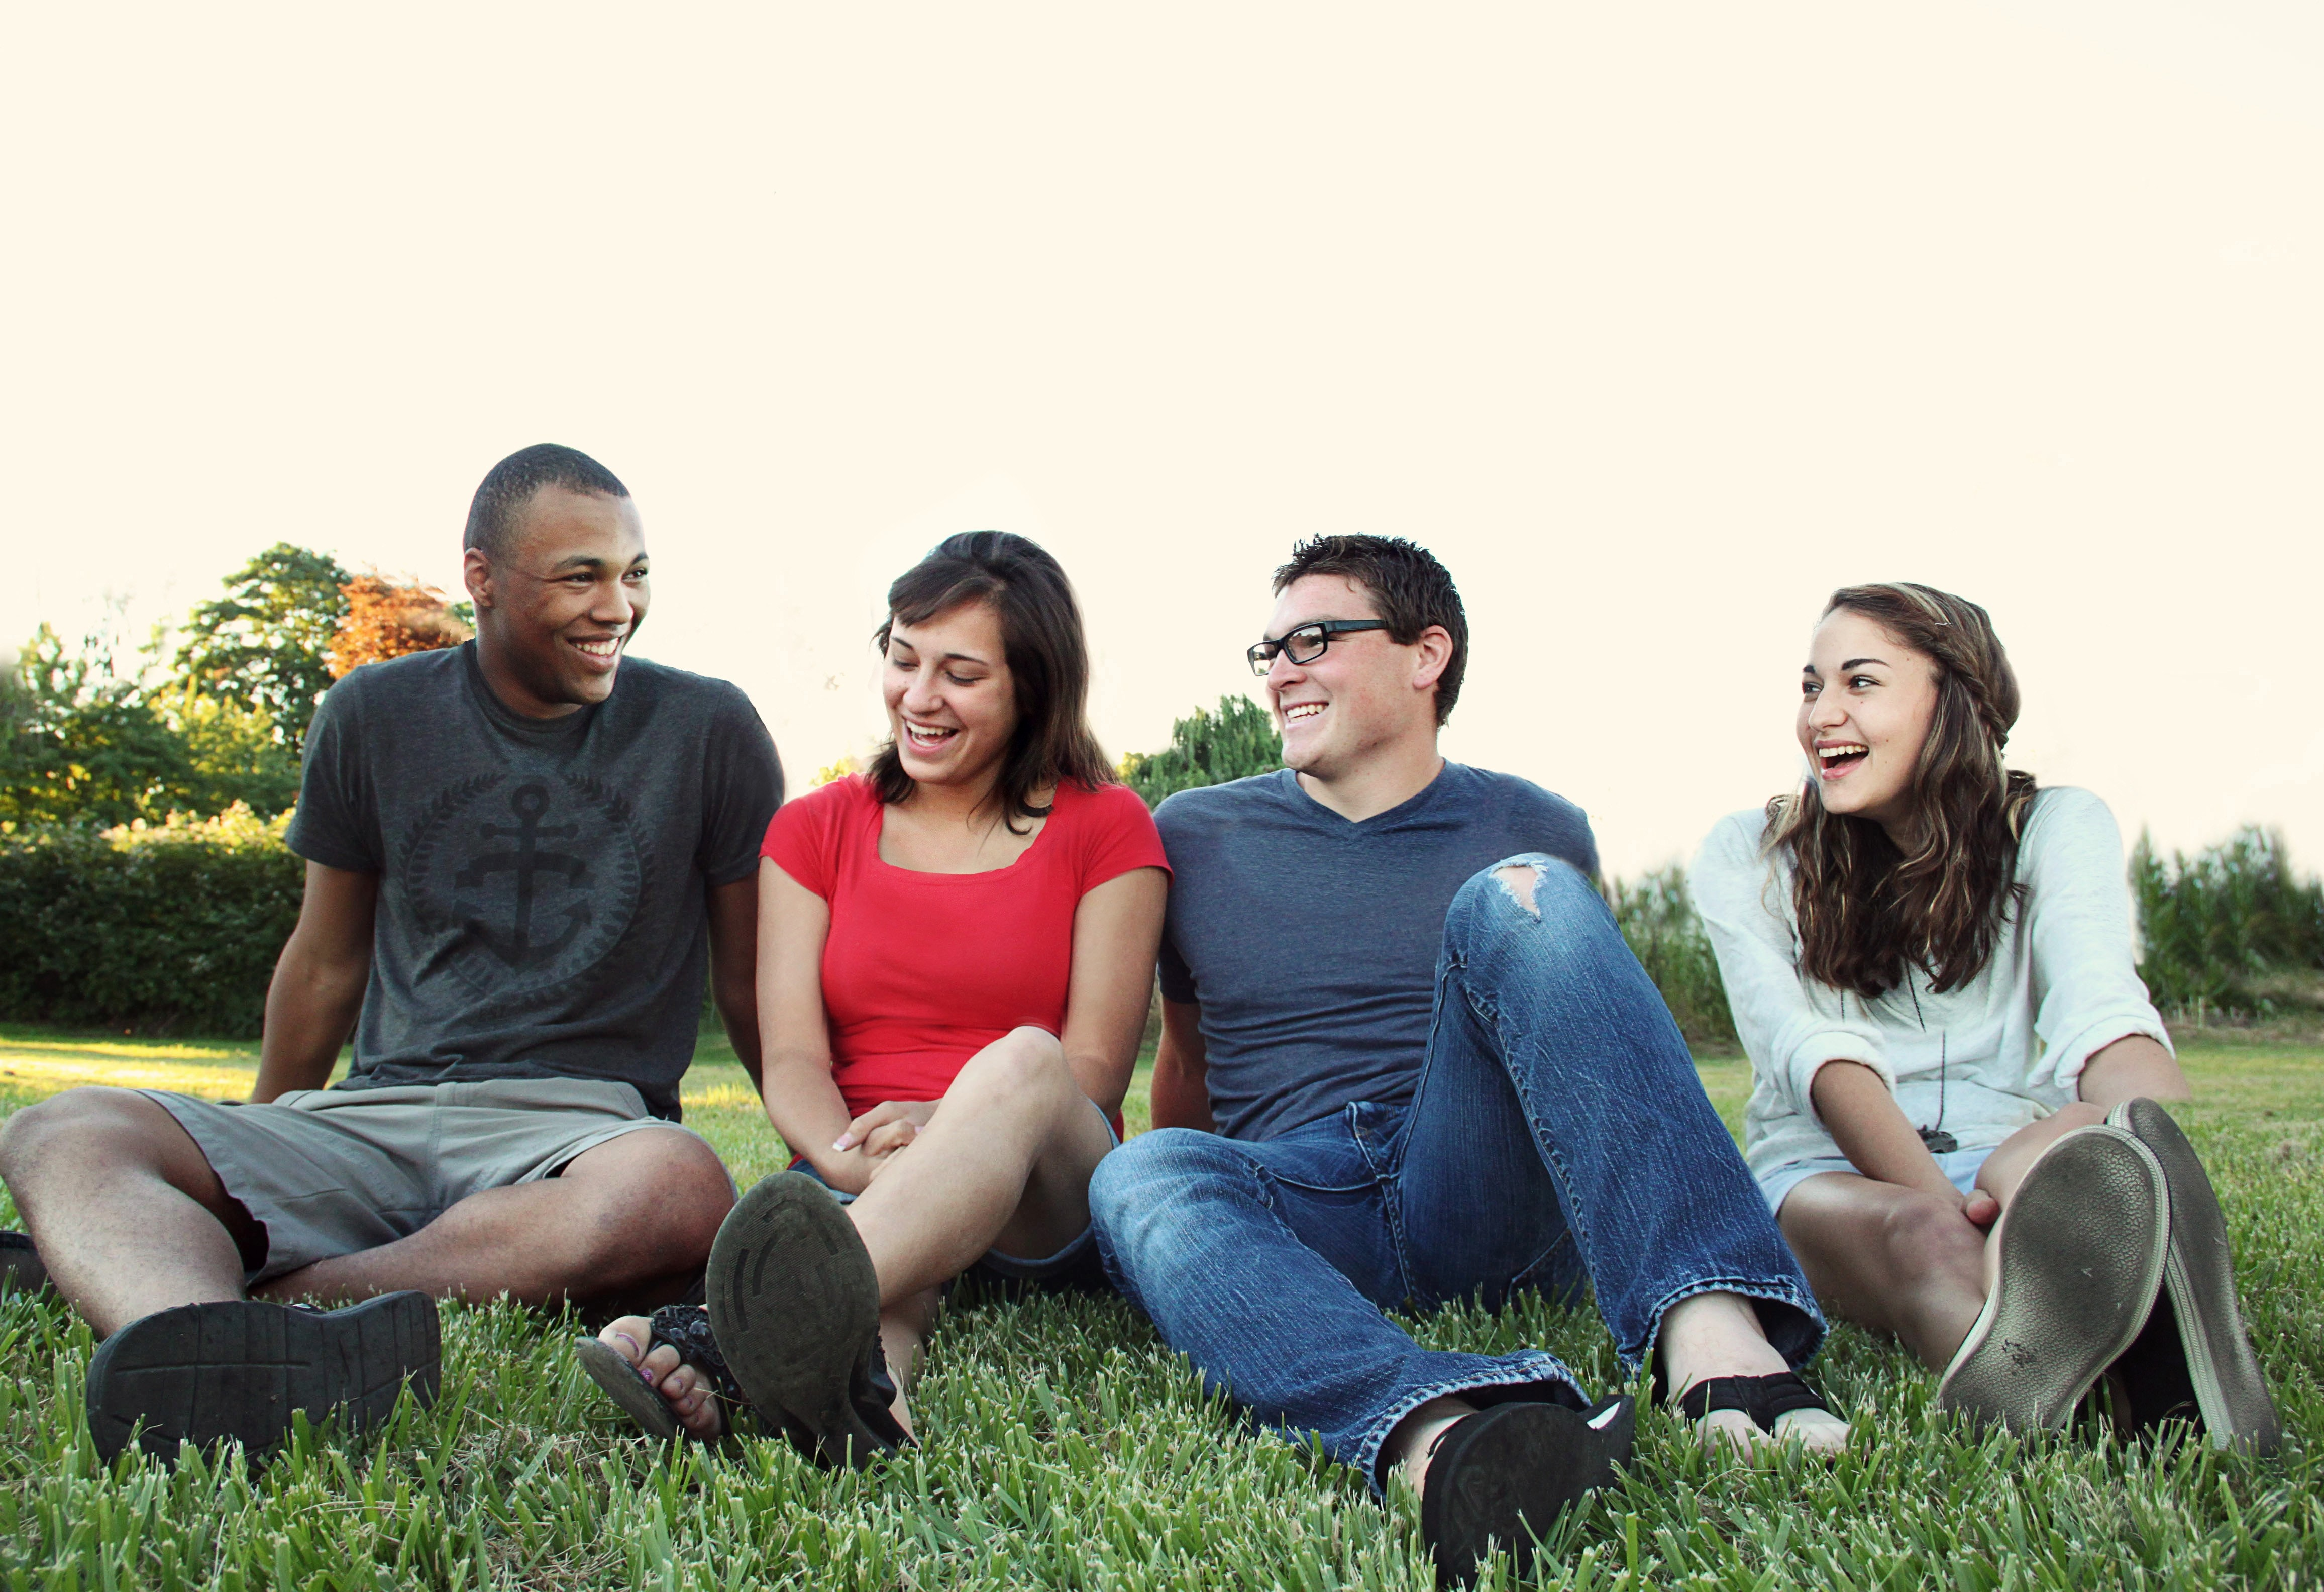 The Image shows four smiling young people in jeans and tshirts seated on grass.